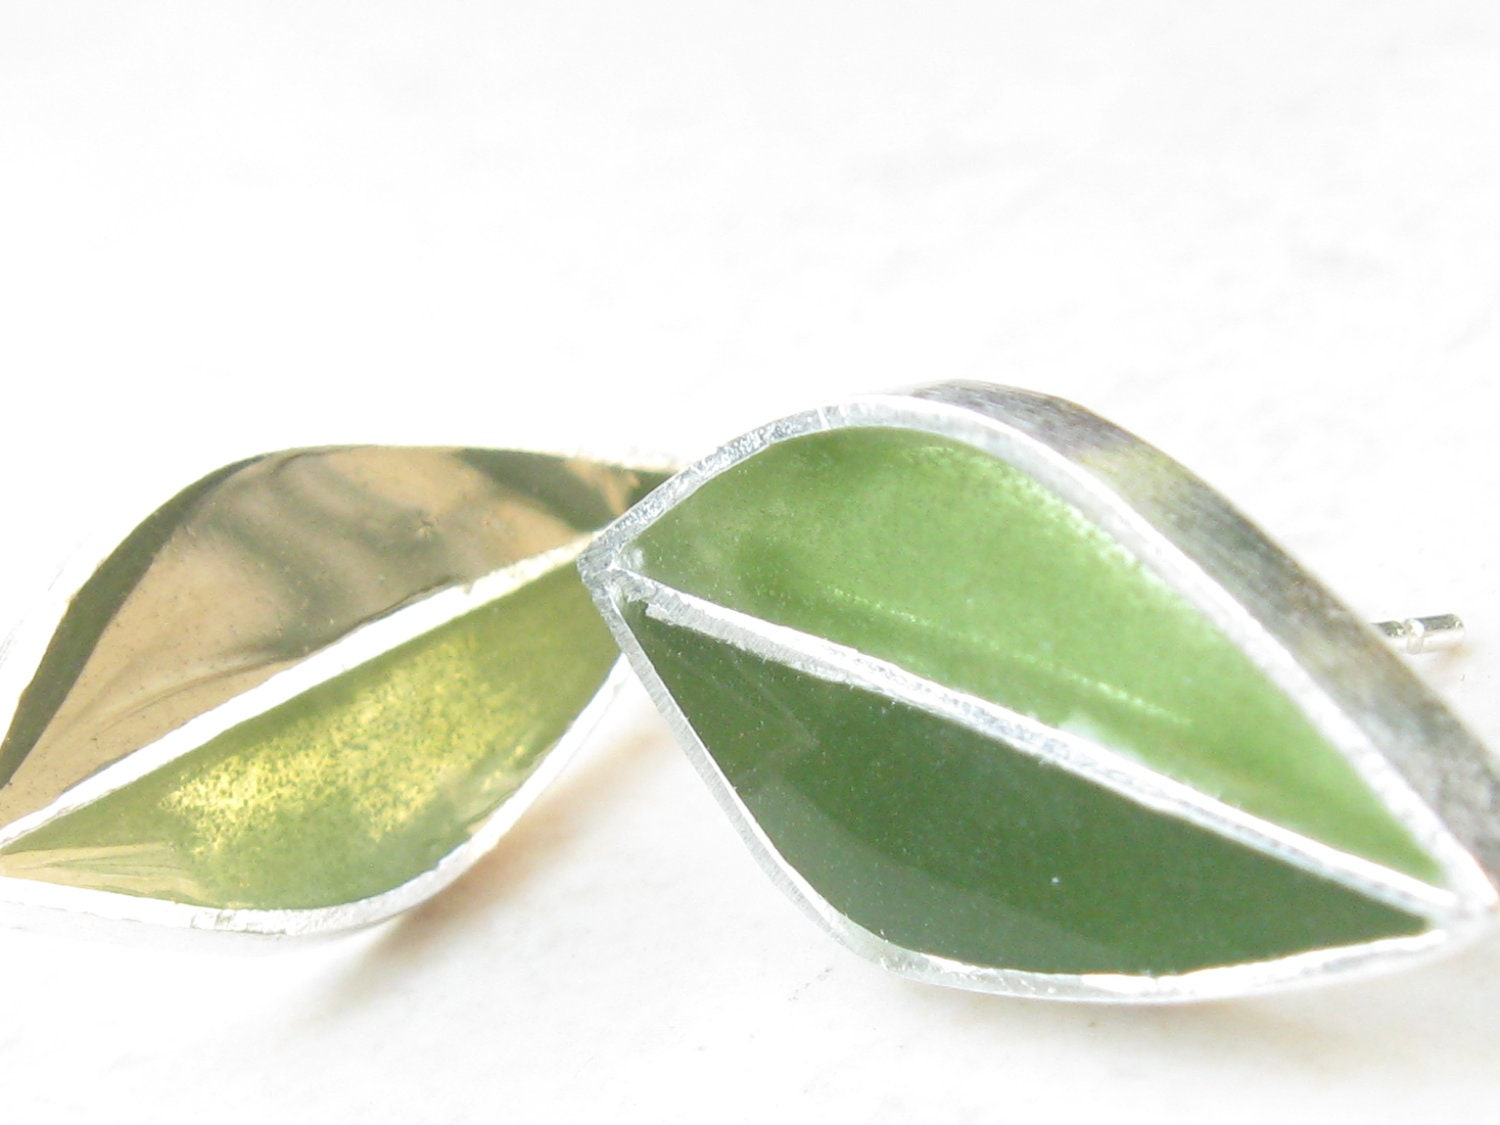 Olive Green Earrings Post Earrings Leaves Earrings Sterling Silver Earrings - jewelrybymichal